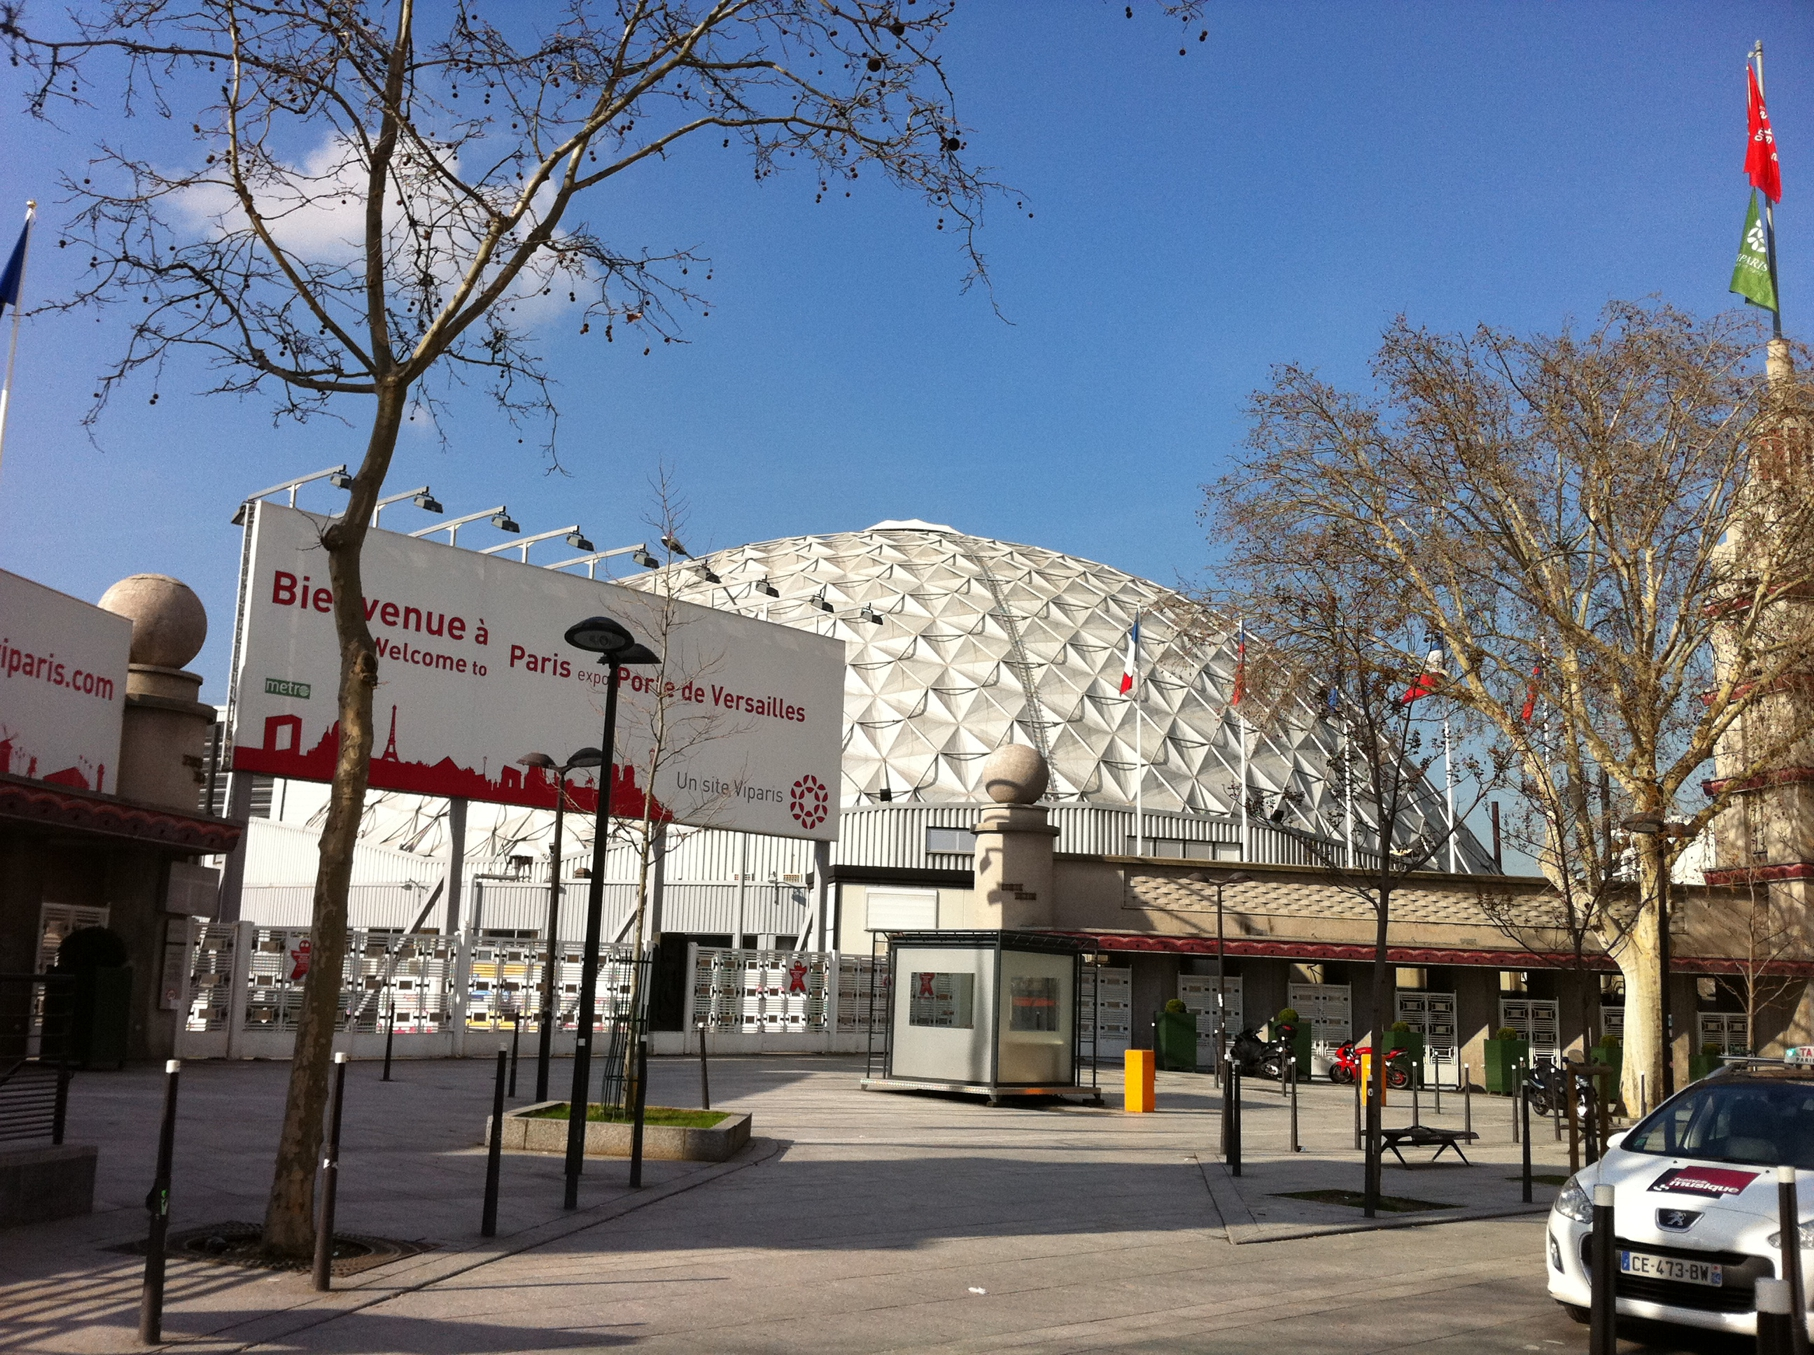 Paris for Porte de versailles salon expo